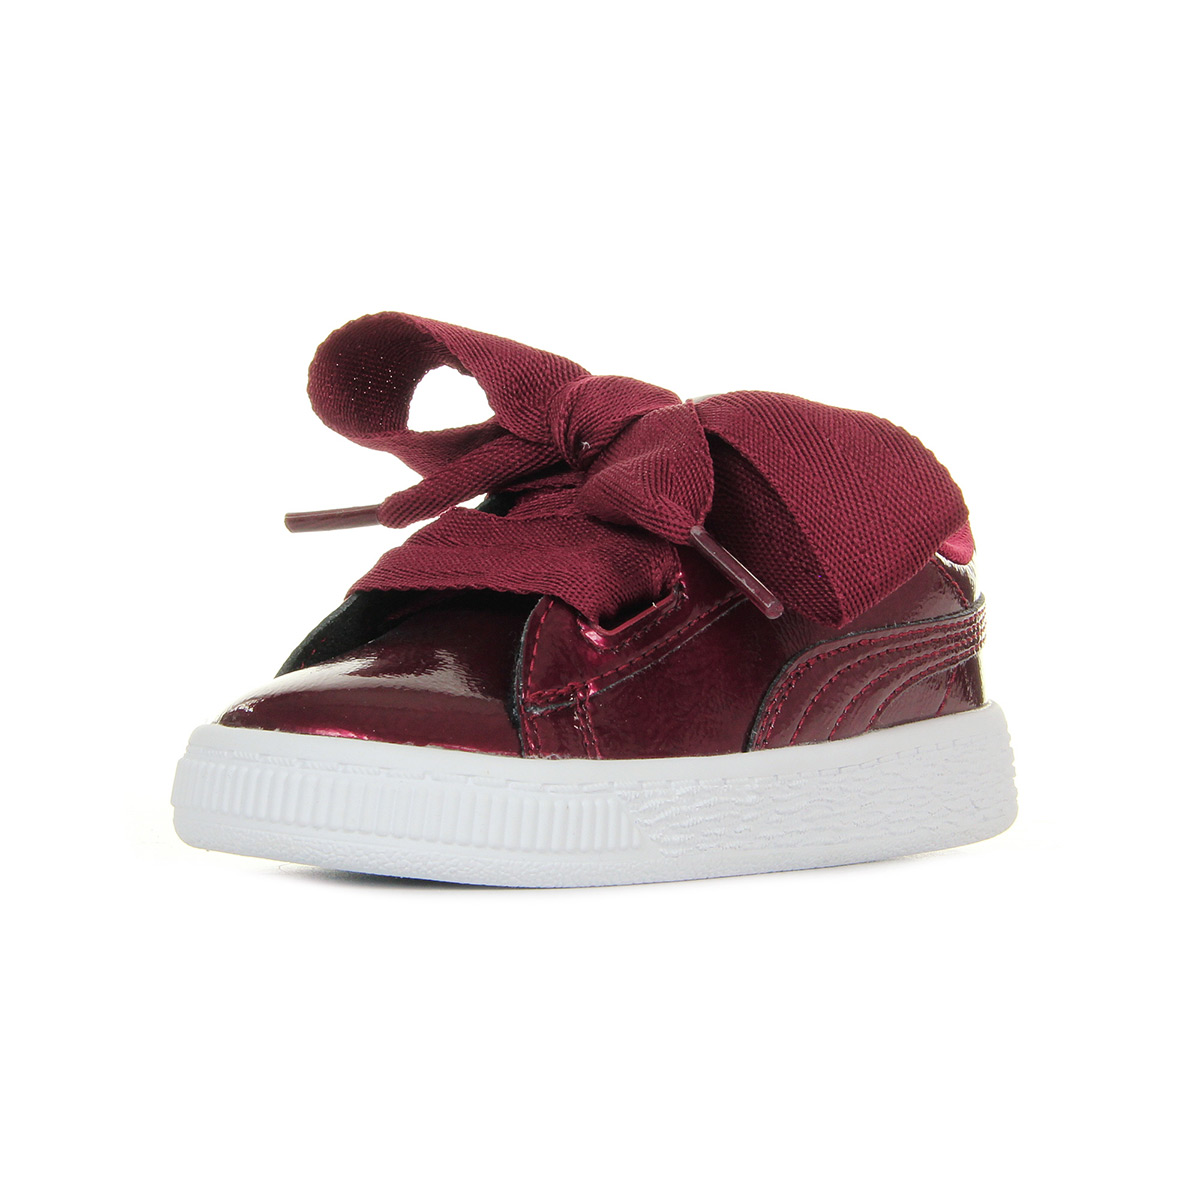 Puma Heart Inf Glam Mode Fille 36389502Baskets K31TlFJc